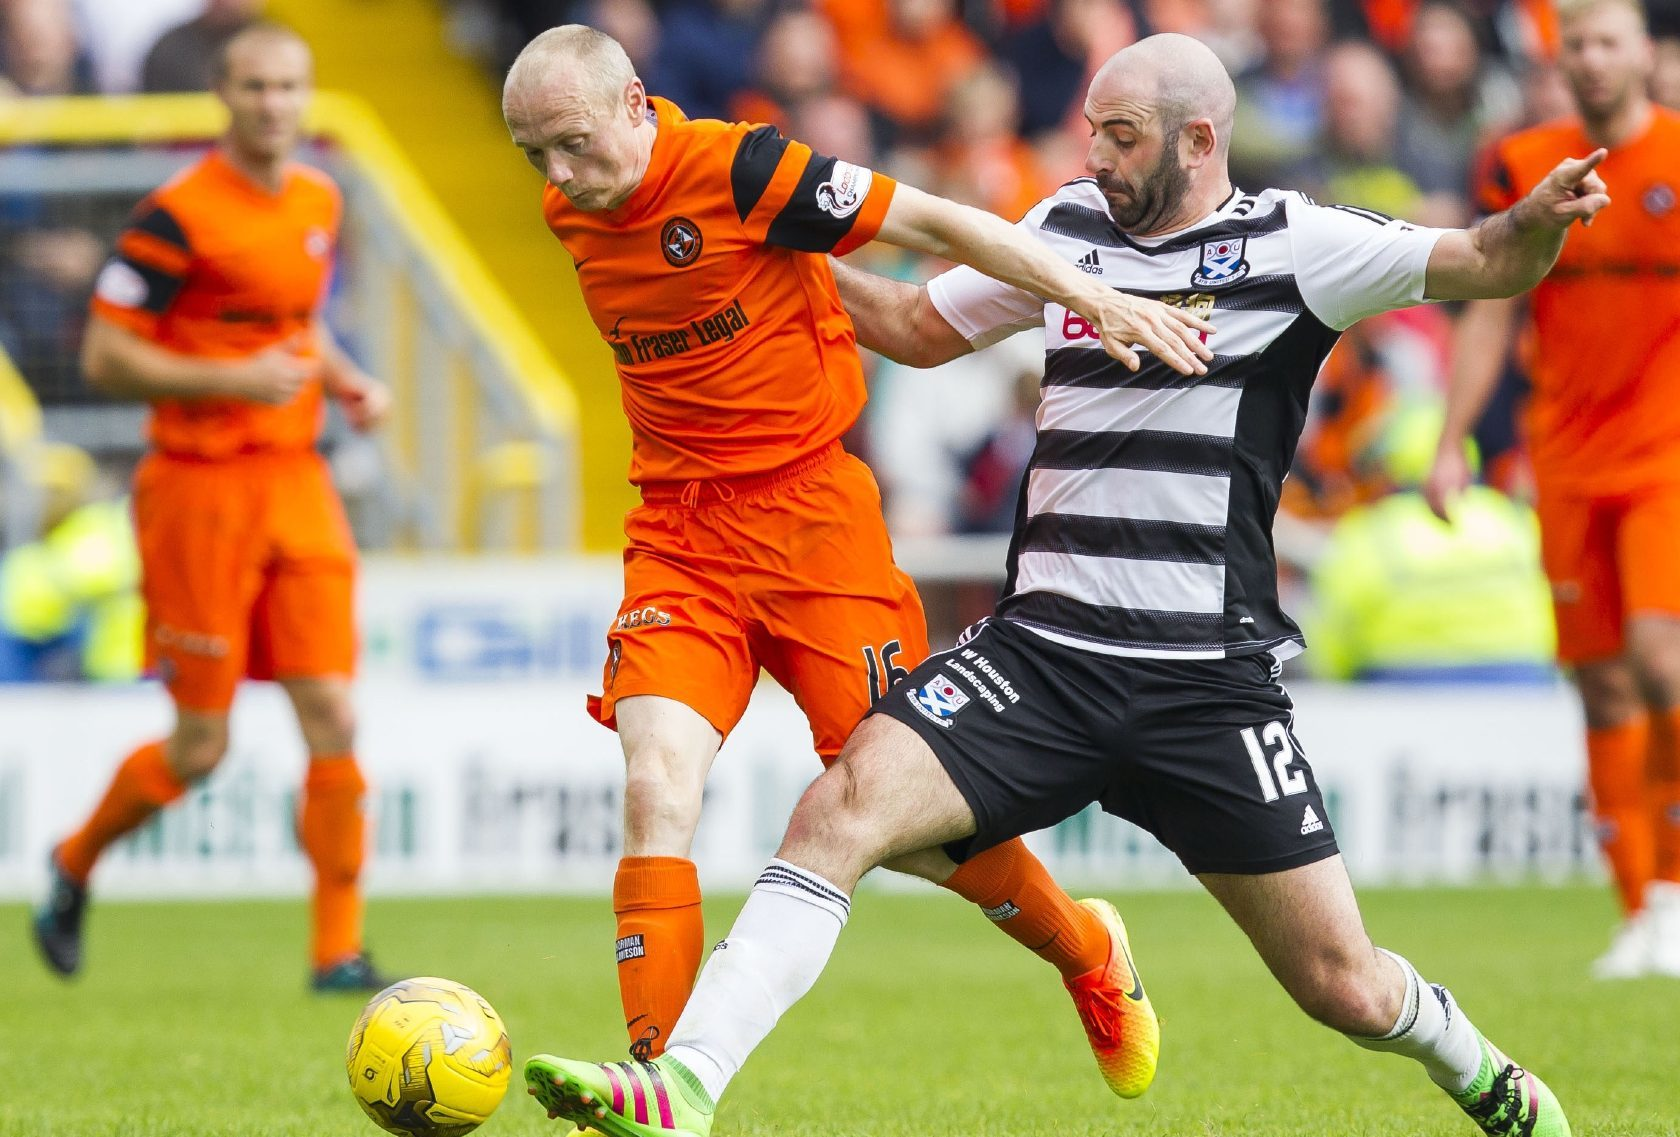 Willo Flood fends off a challenge from Ayr player Gary Harkins.